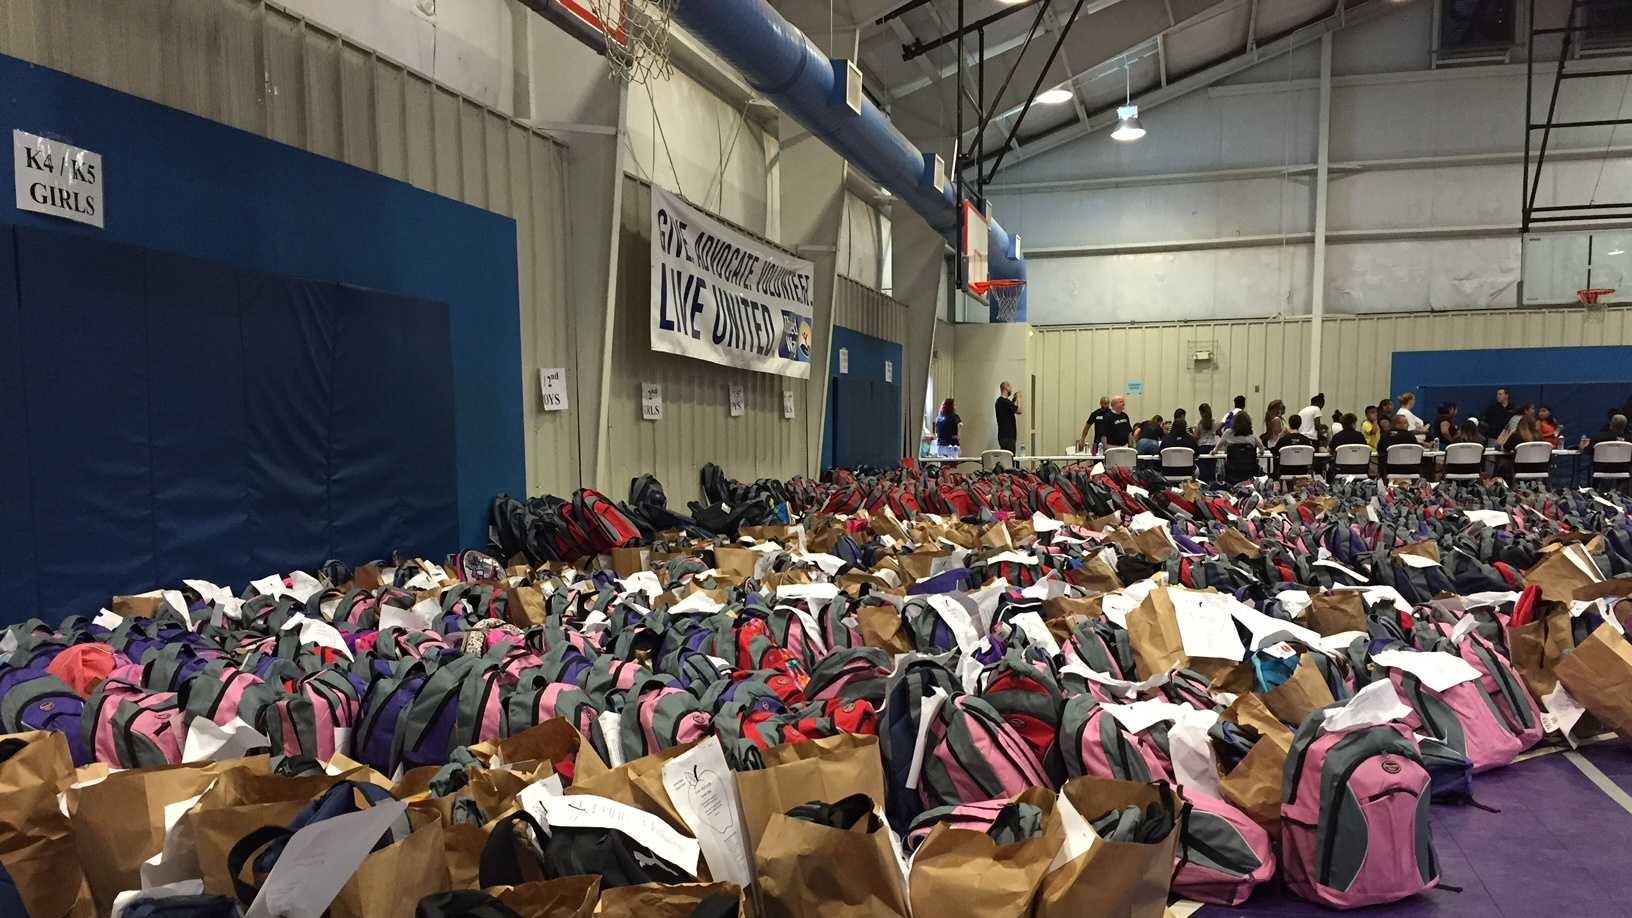 More than 3,500 kids received school supplies at event in Greenville.